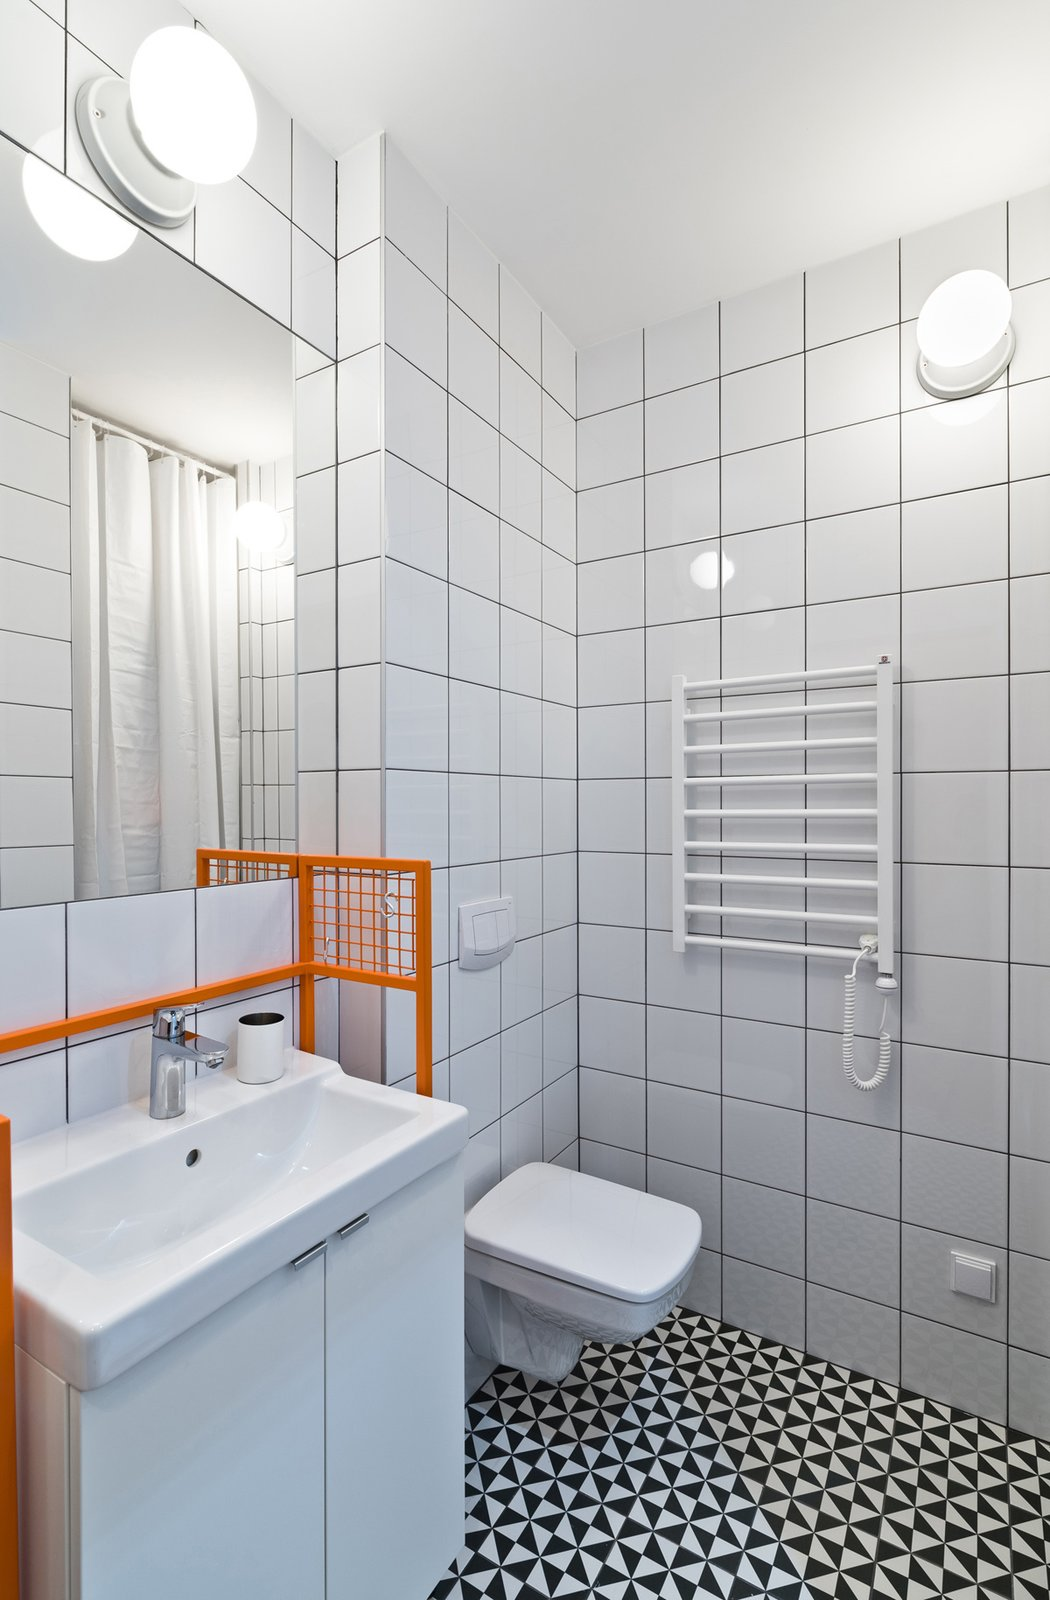 Bath Room The bathroom features graphic eye-catching Vives floor tiles surrounded by Opoczno wall tiles and clean white plumbing fixtures. The custom-designed orange sink frame adds a whimsical pop of color.  Photo 6 of 7 in Our Dorm Definitely Did Not Look Like This